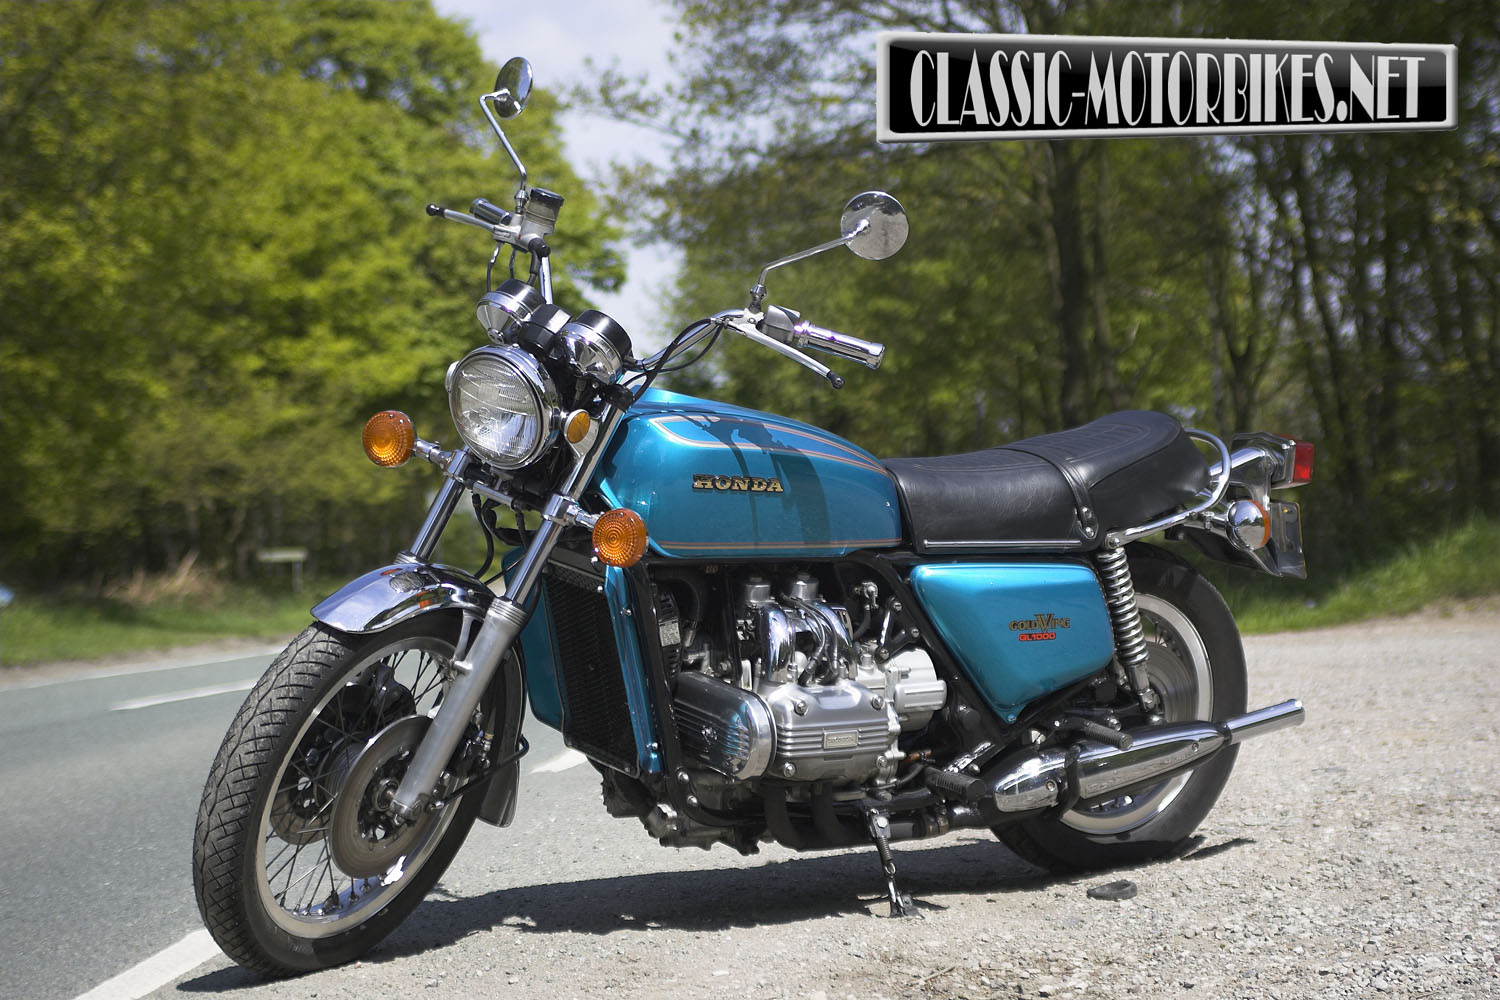 Wing Gold >> Honda GL1000 Goldwing Road Test | Classic Motorbikes